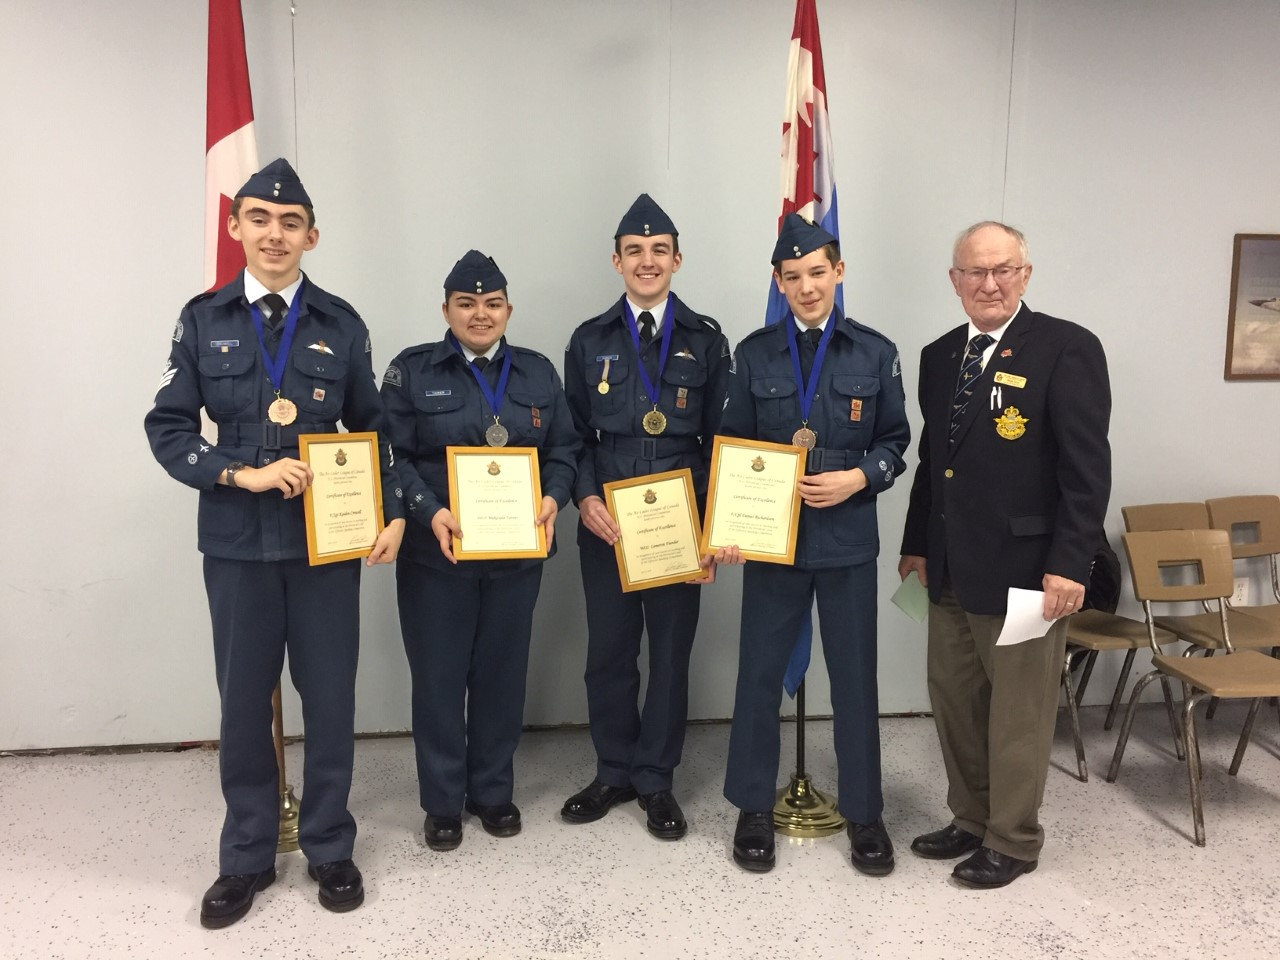 2019 Provincial Effective Speaking Competitors